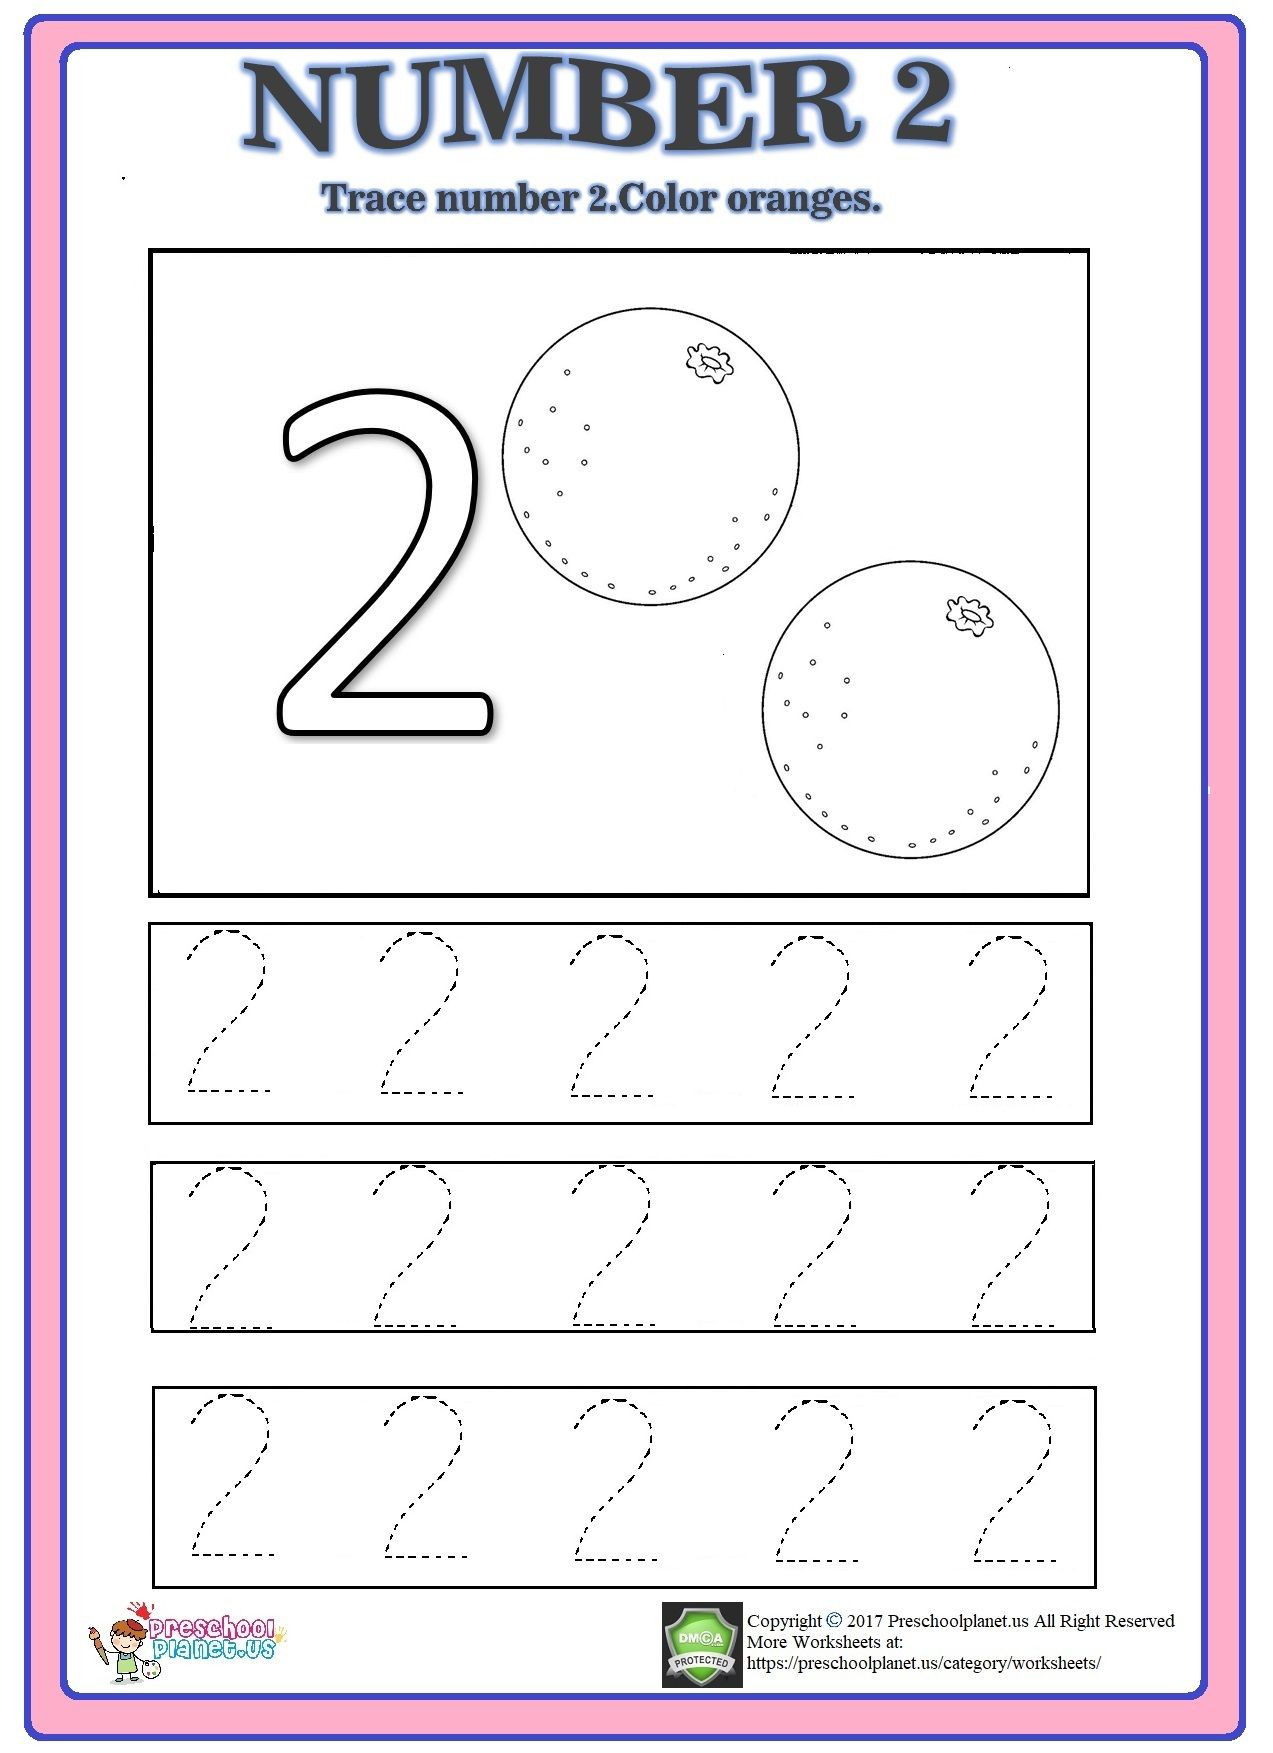 Number 2 Worksheets for Preschool Number 2 Trace Worksheet